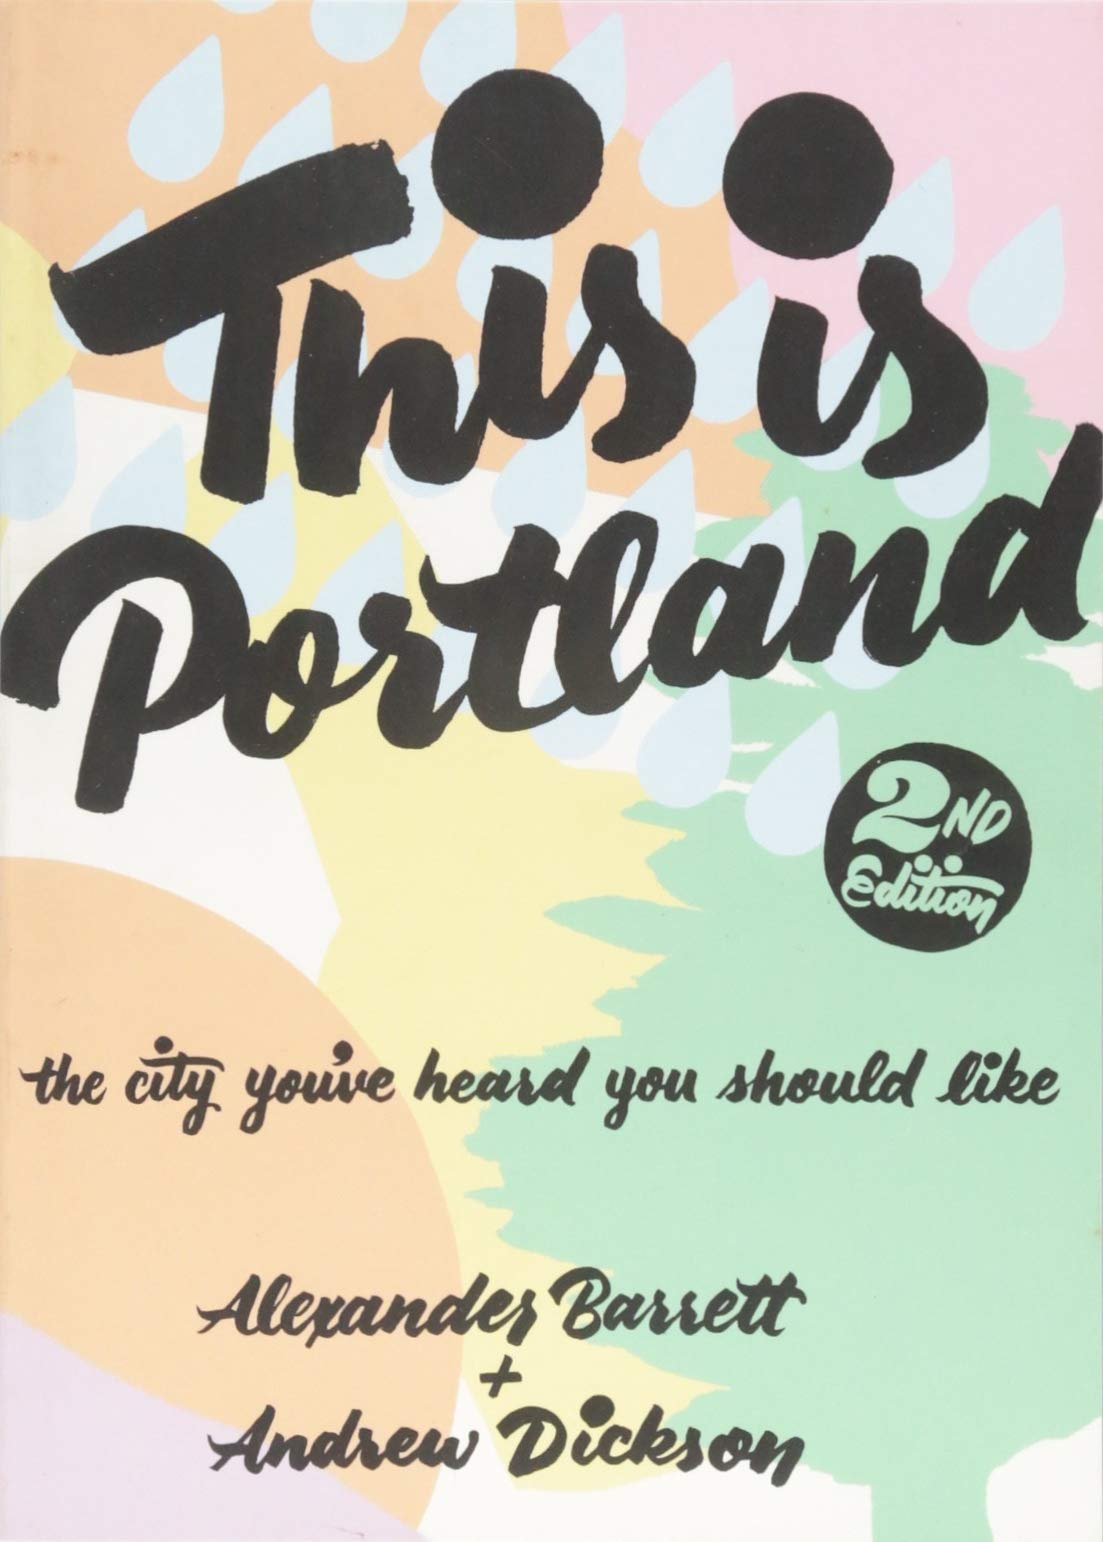 This is Portland (the city you've heard you should like) by Alexander Barrett (2nd Edition)